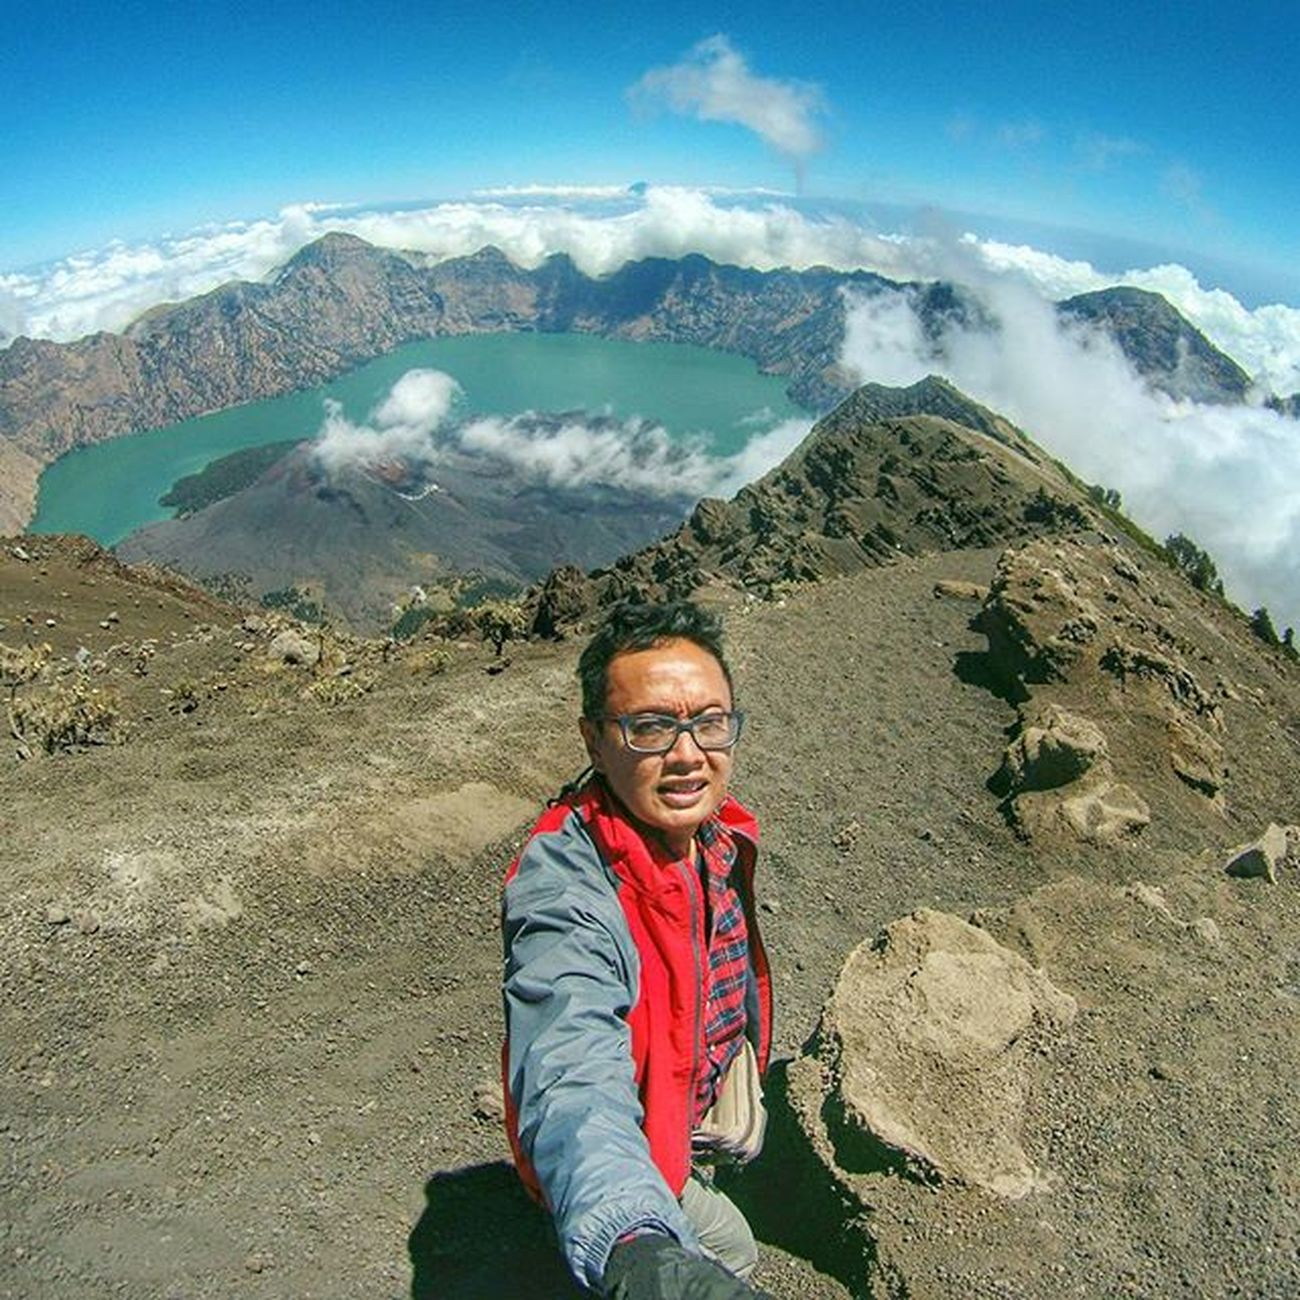 On the top of the world, the 3rd tallest mountain in Indonesia Sefo  2015  Rinjani